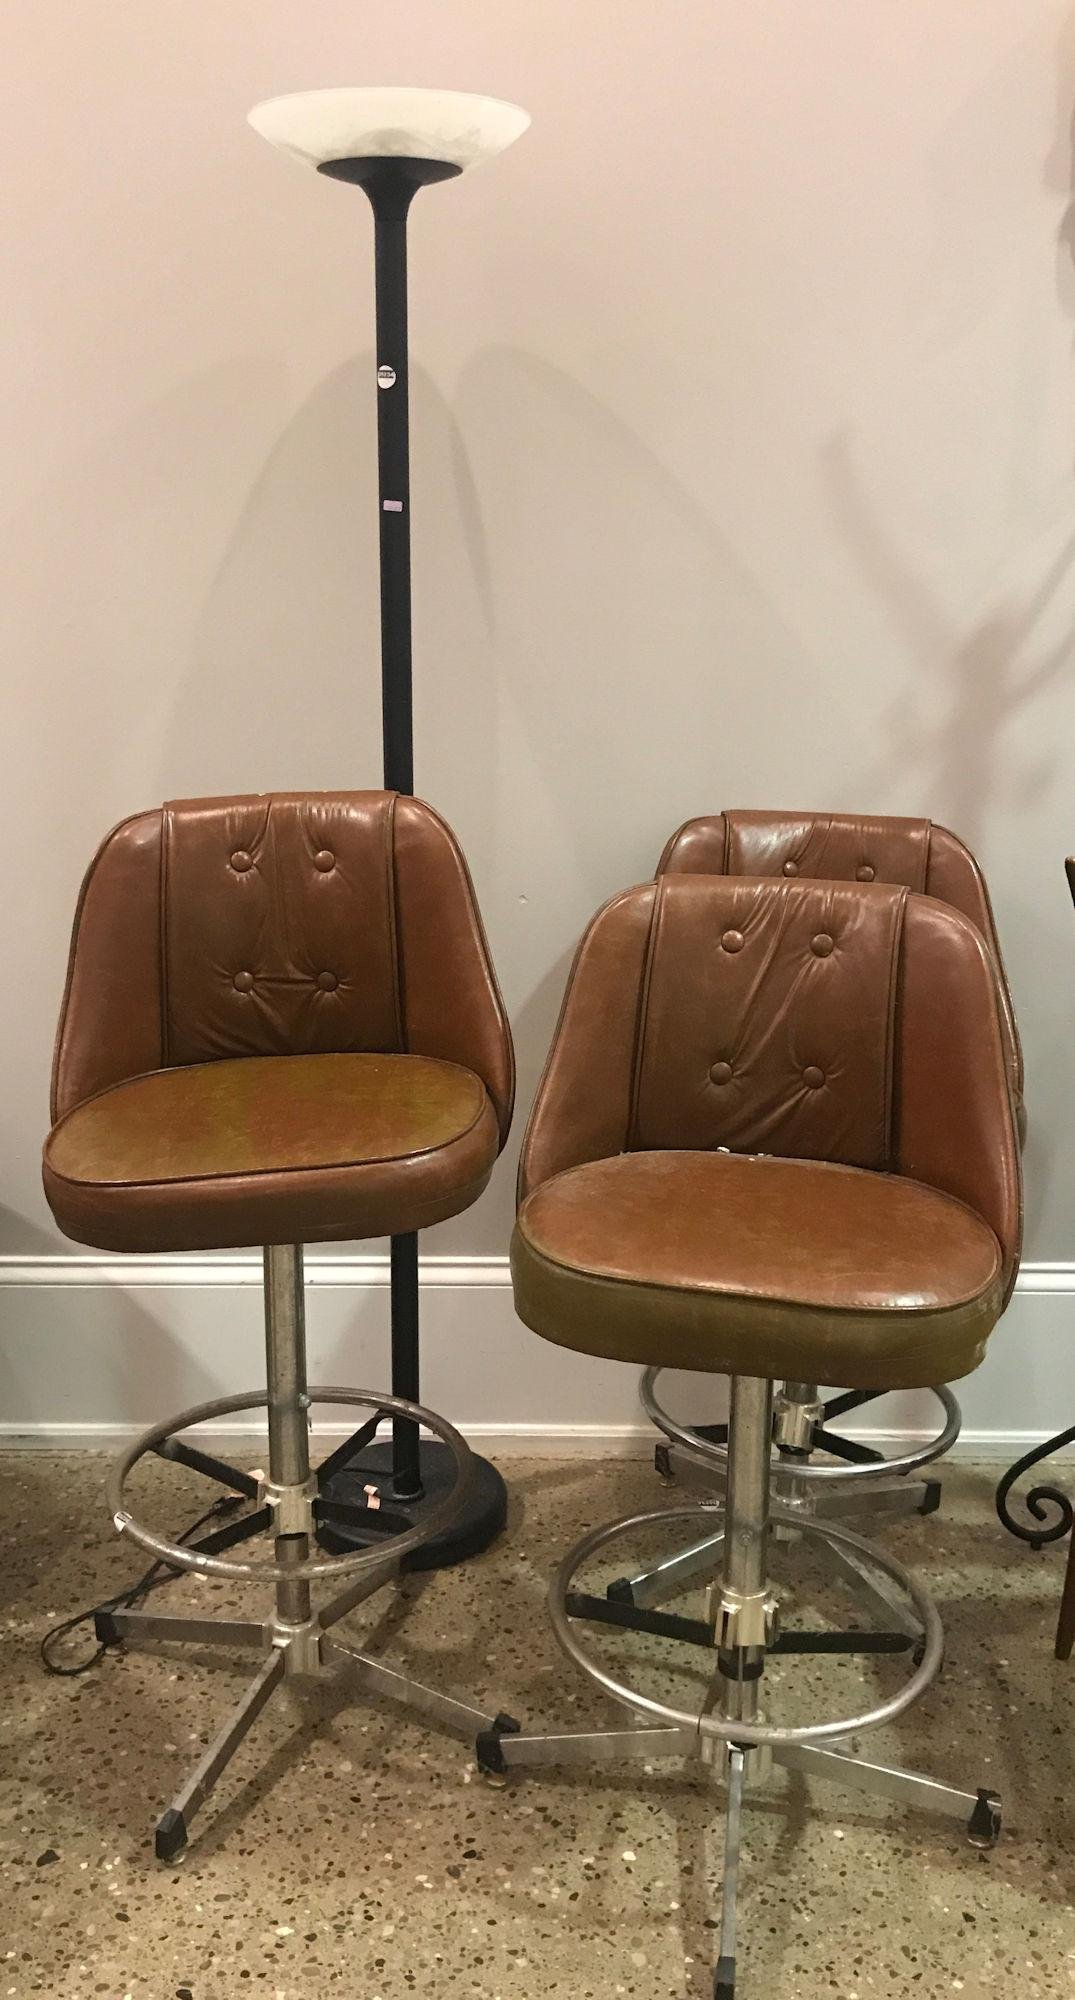 3 SWIVEL BAR CHAIRS WITH VINYL UPHOLSTERY AND LAMP